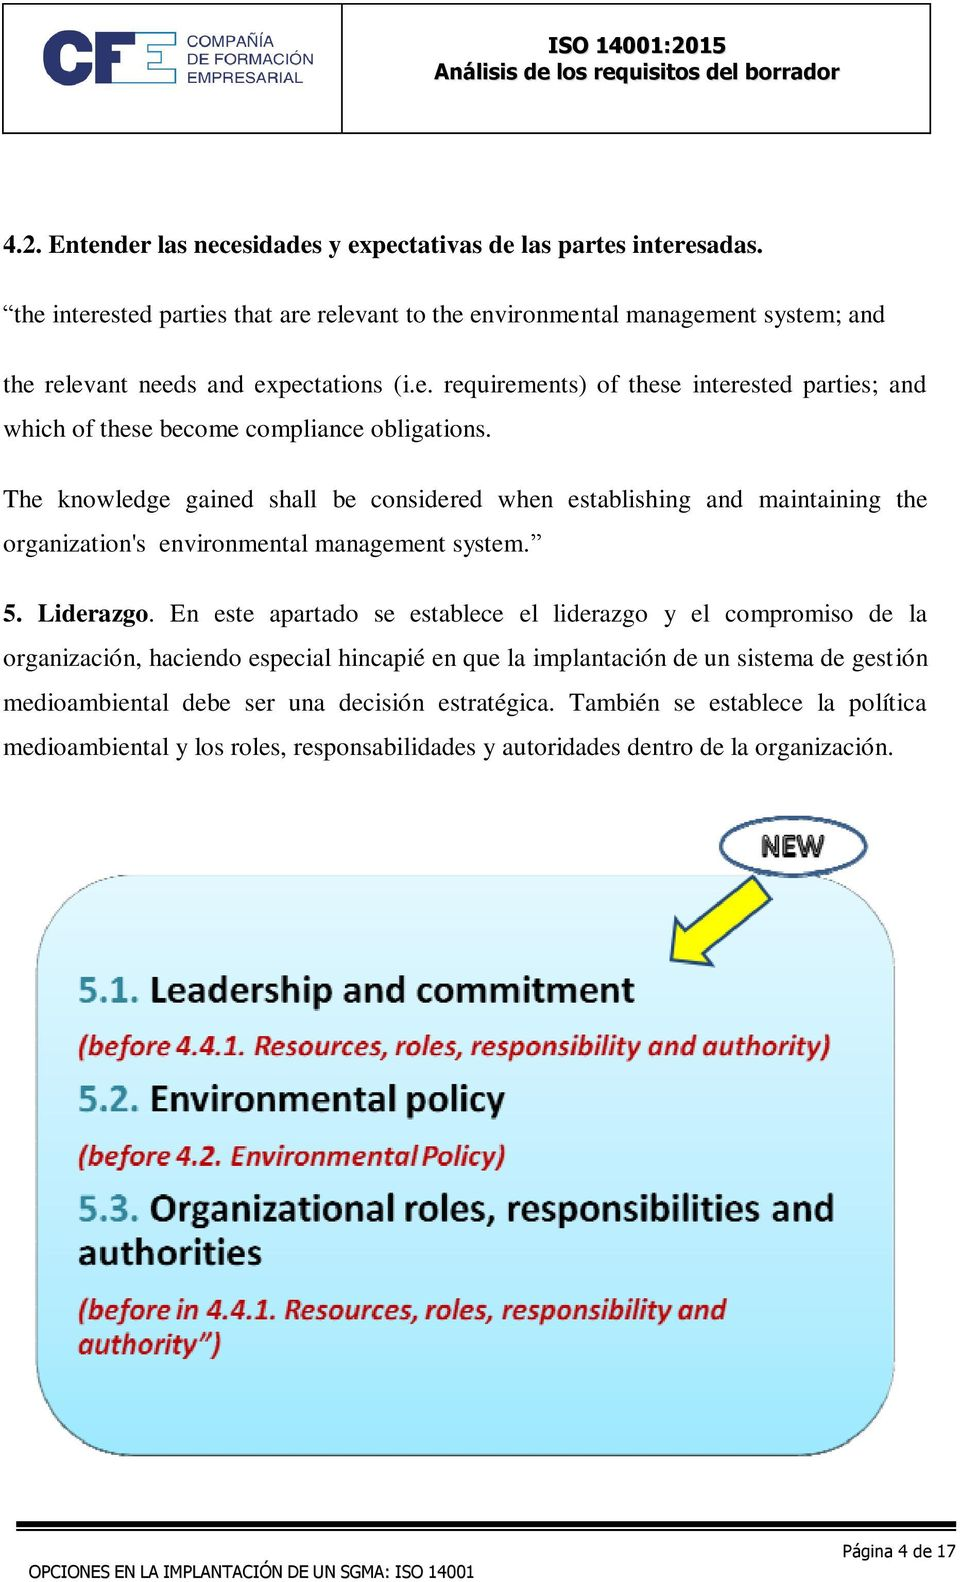 The knowledge gained shall be considered when establishing and maintaining the organization's environmental management system. 5. Liderazgo.